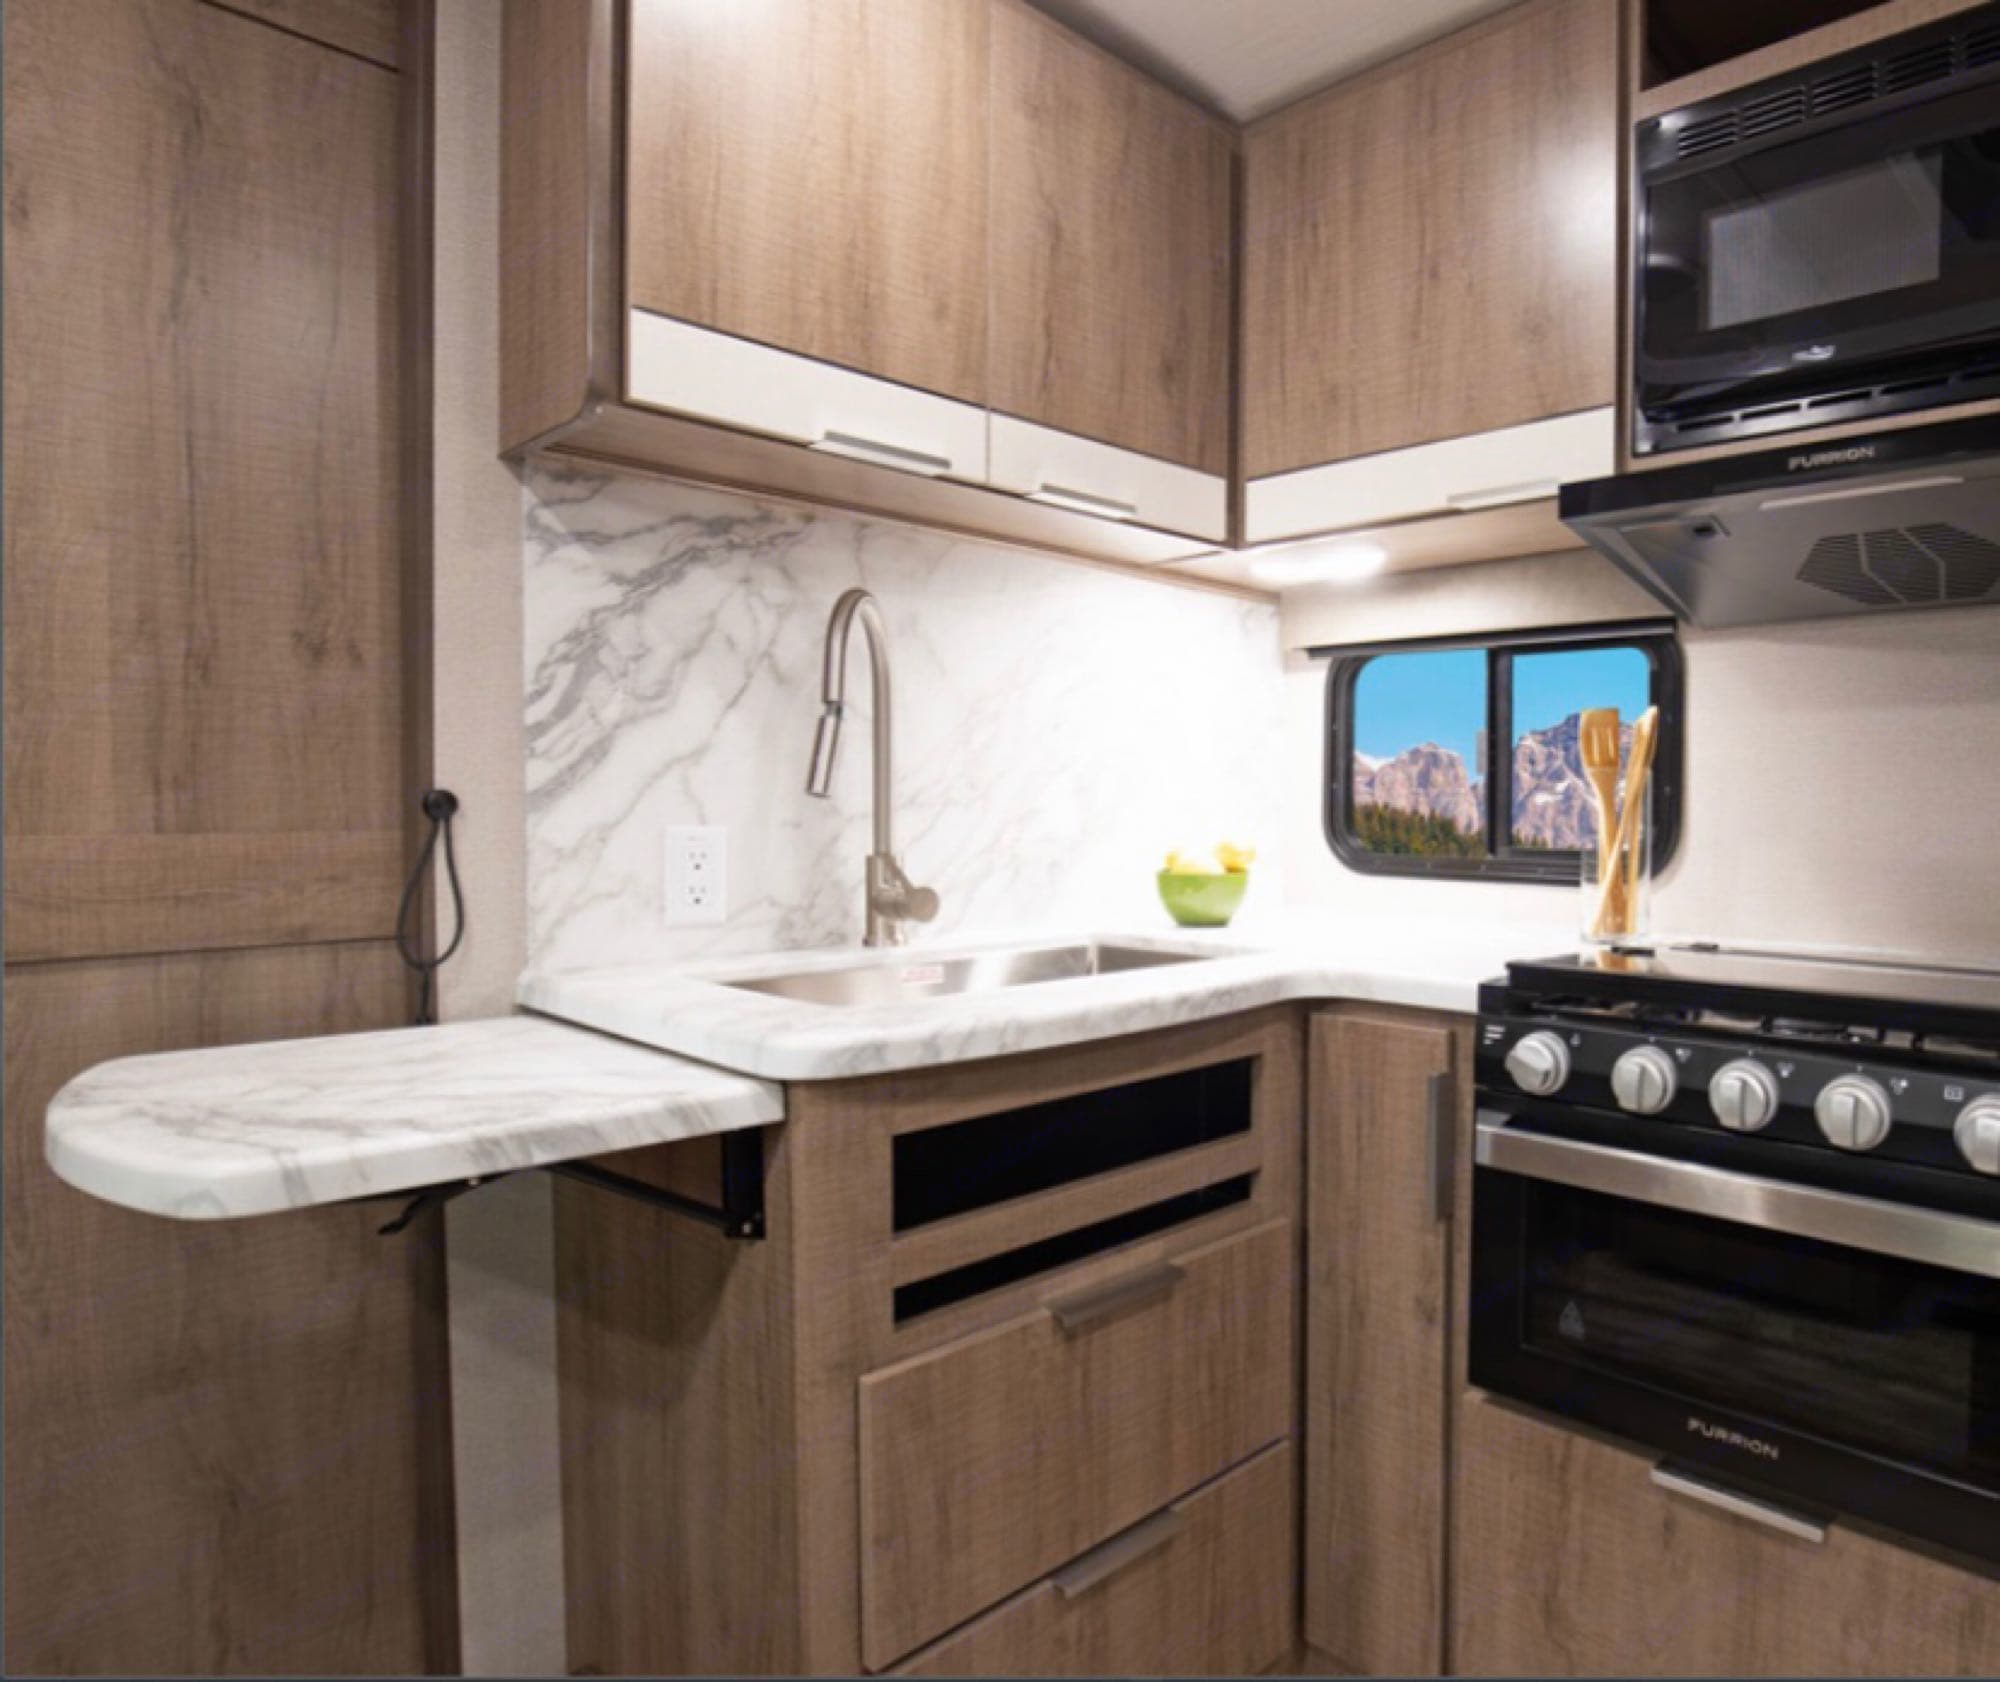 kitchen sink with extra pull out counter space. Grand Design imagine 2020